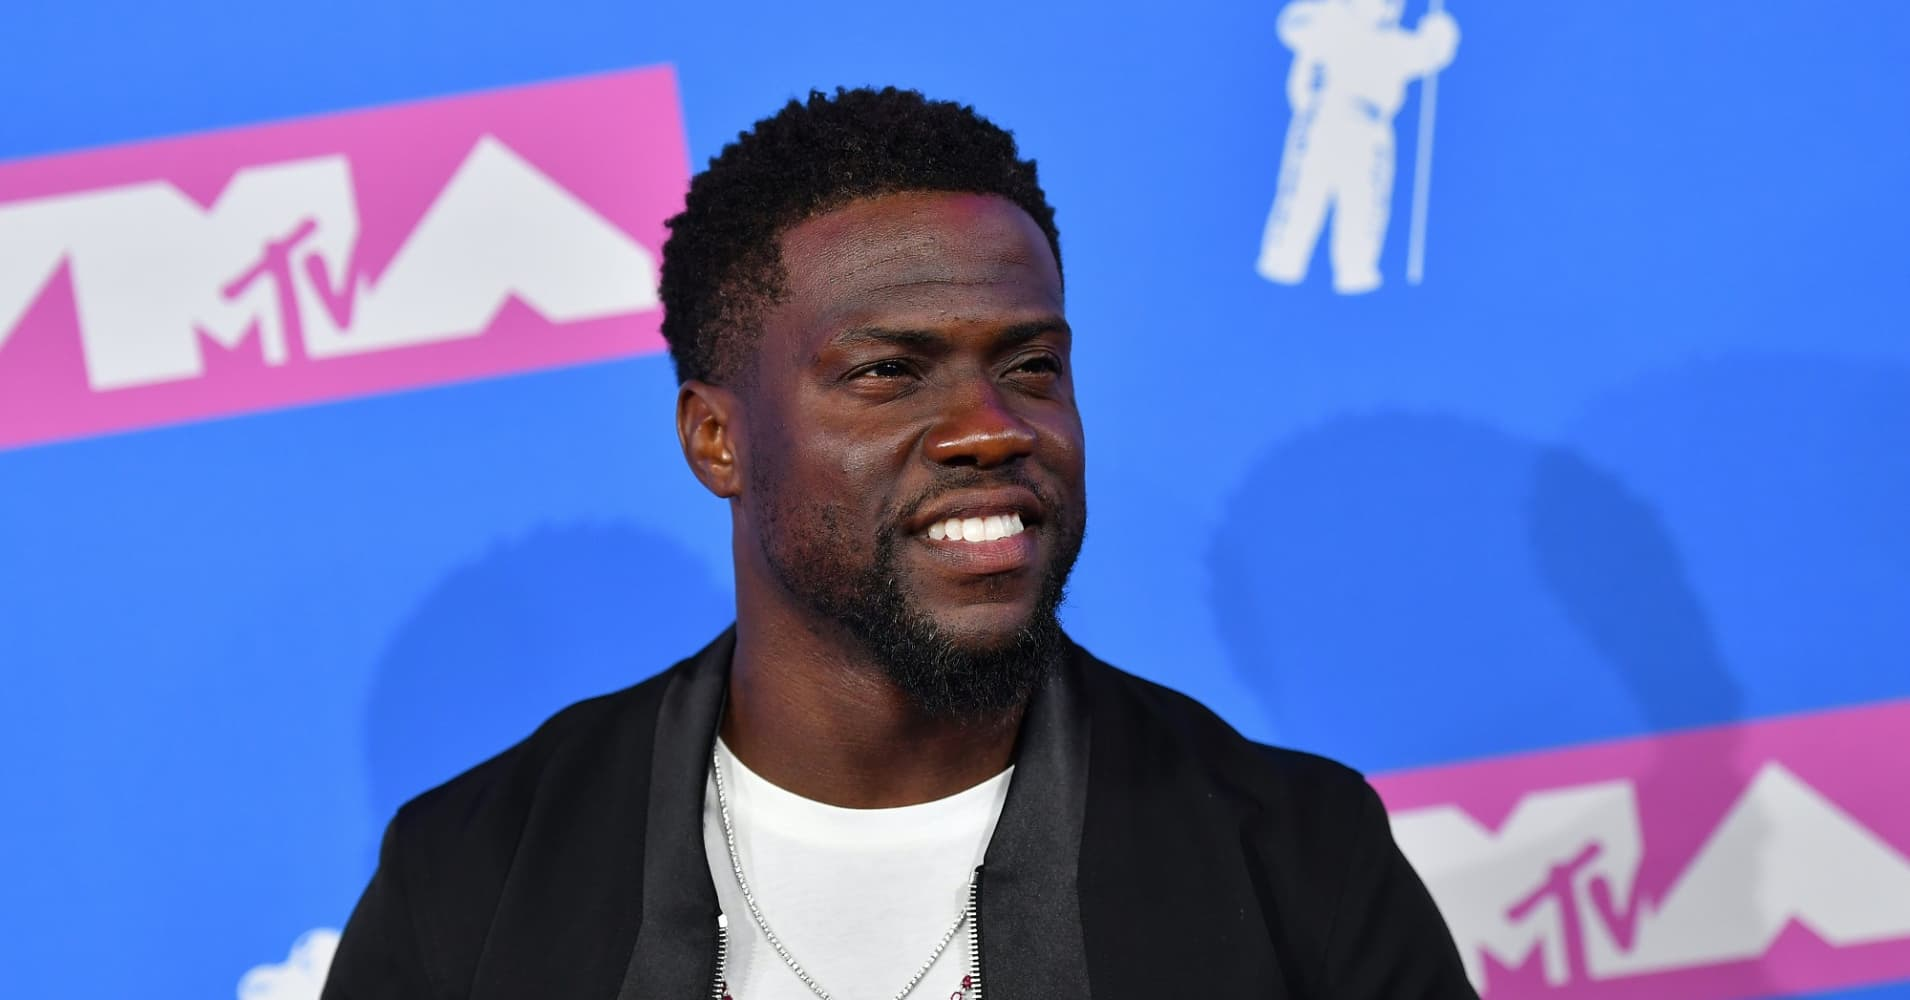 Actor/comedian Kevin Hart attends the 2018 MTV Video Music Awards at Radio City Music Hall on August 20, 2018 in New York City.